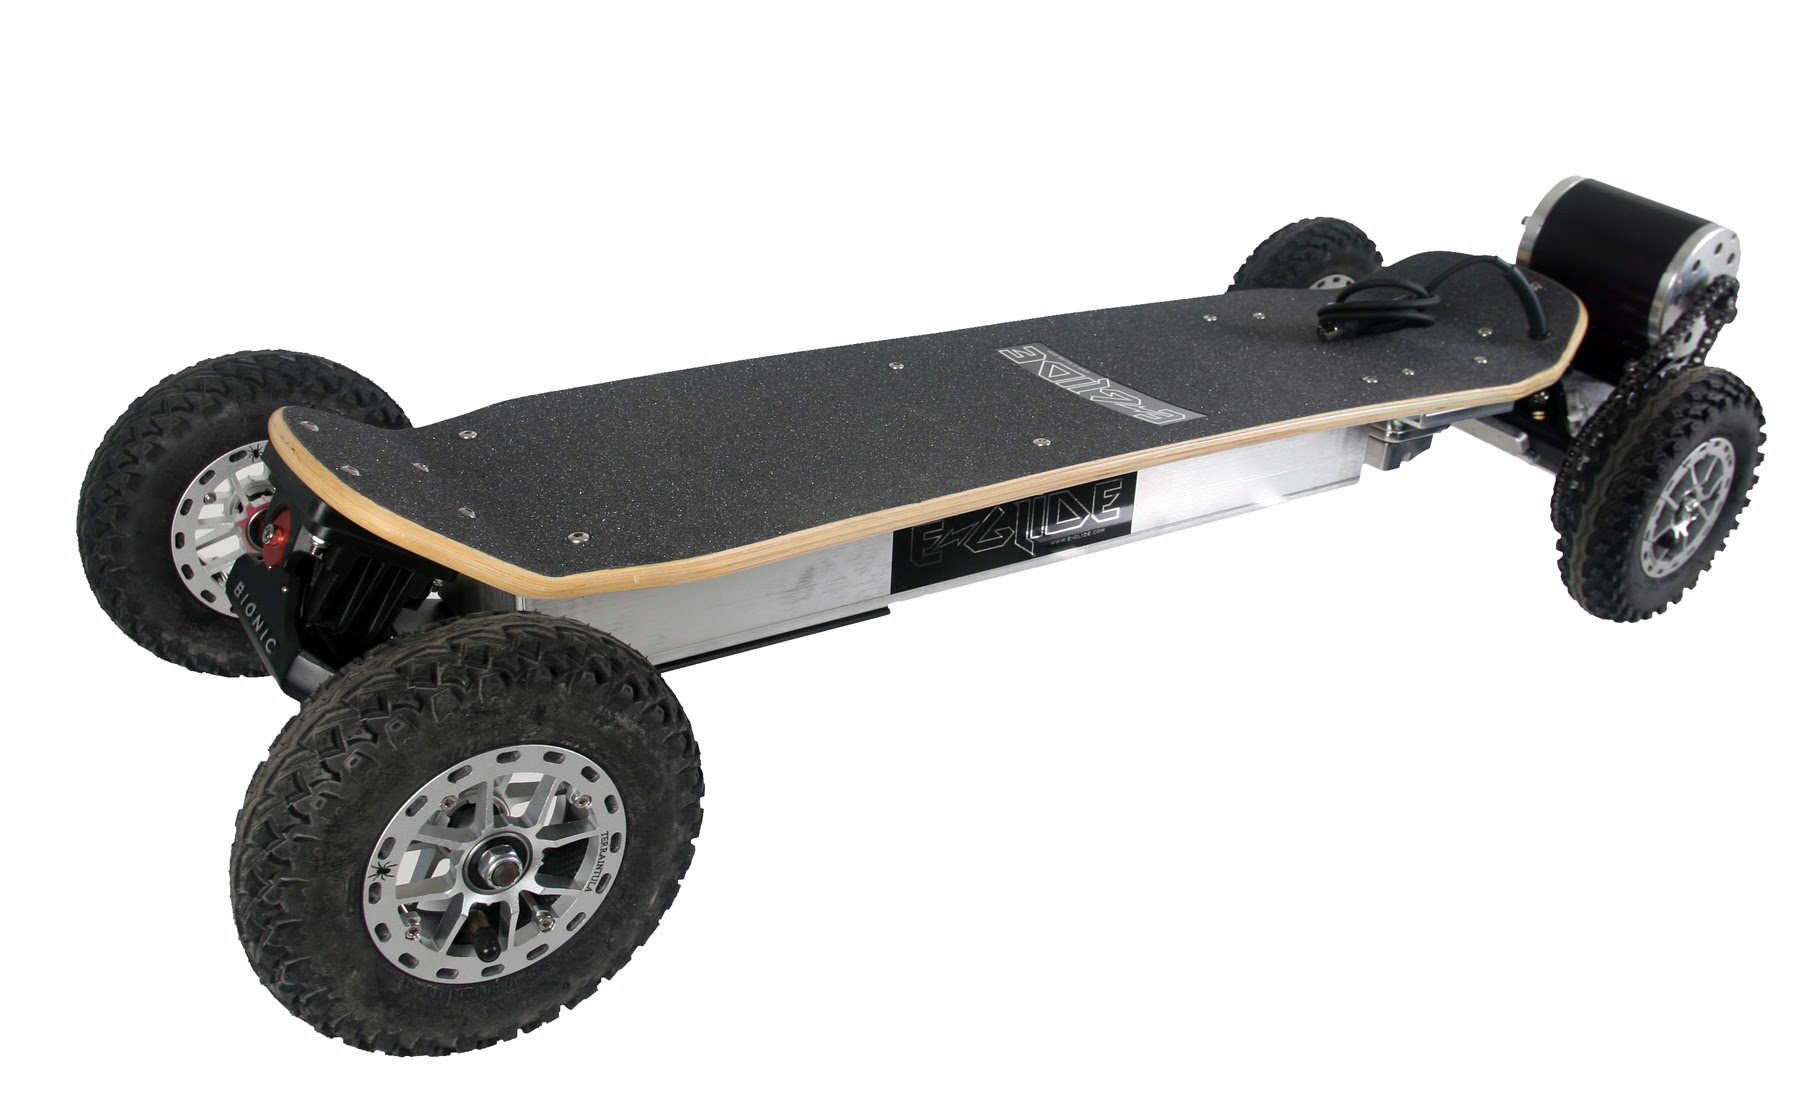 EGlide Introduces the New GI Electric Skateboard, the World\u002639;s Most Exotic and Most Expensive